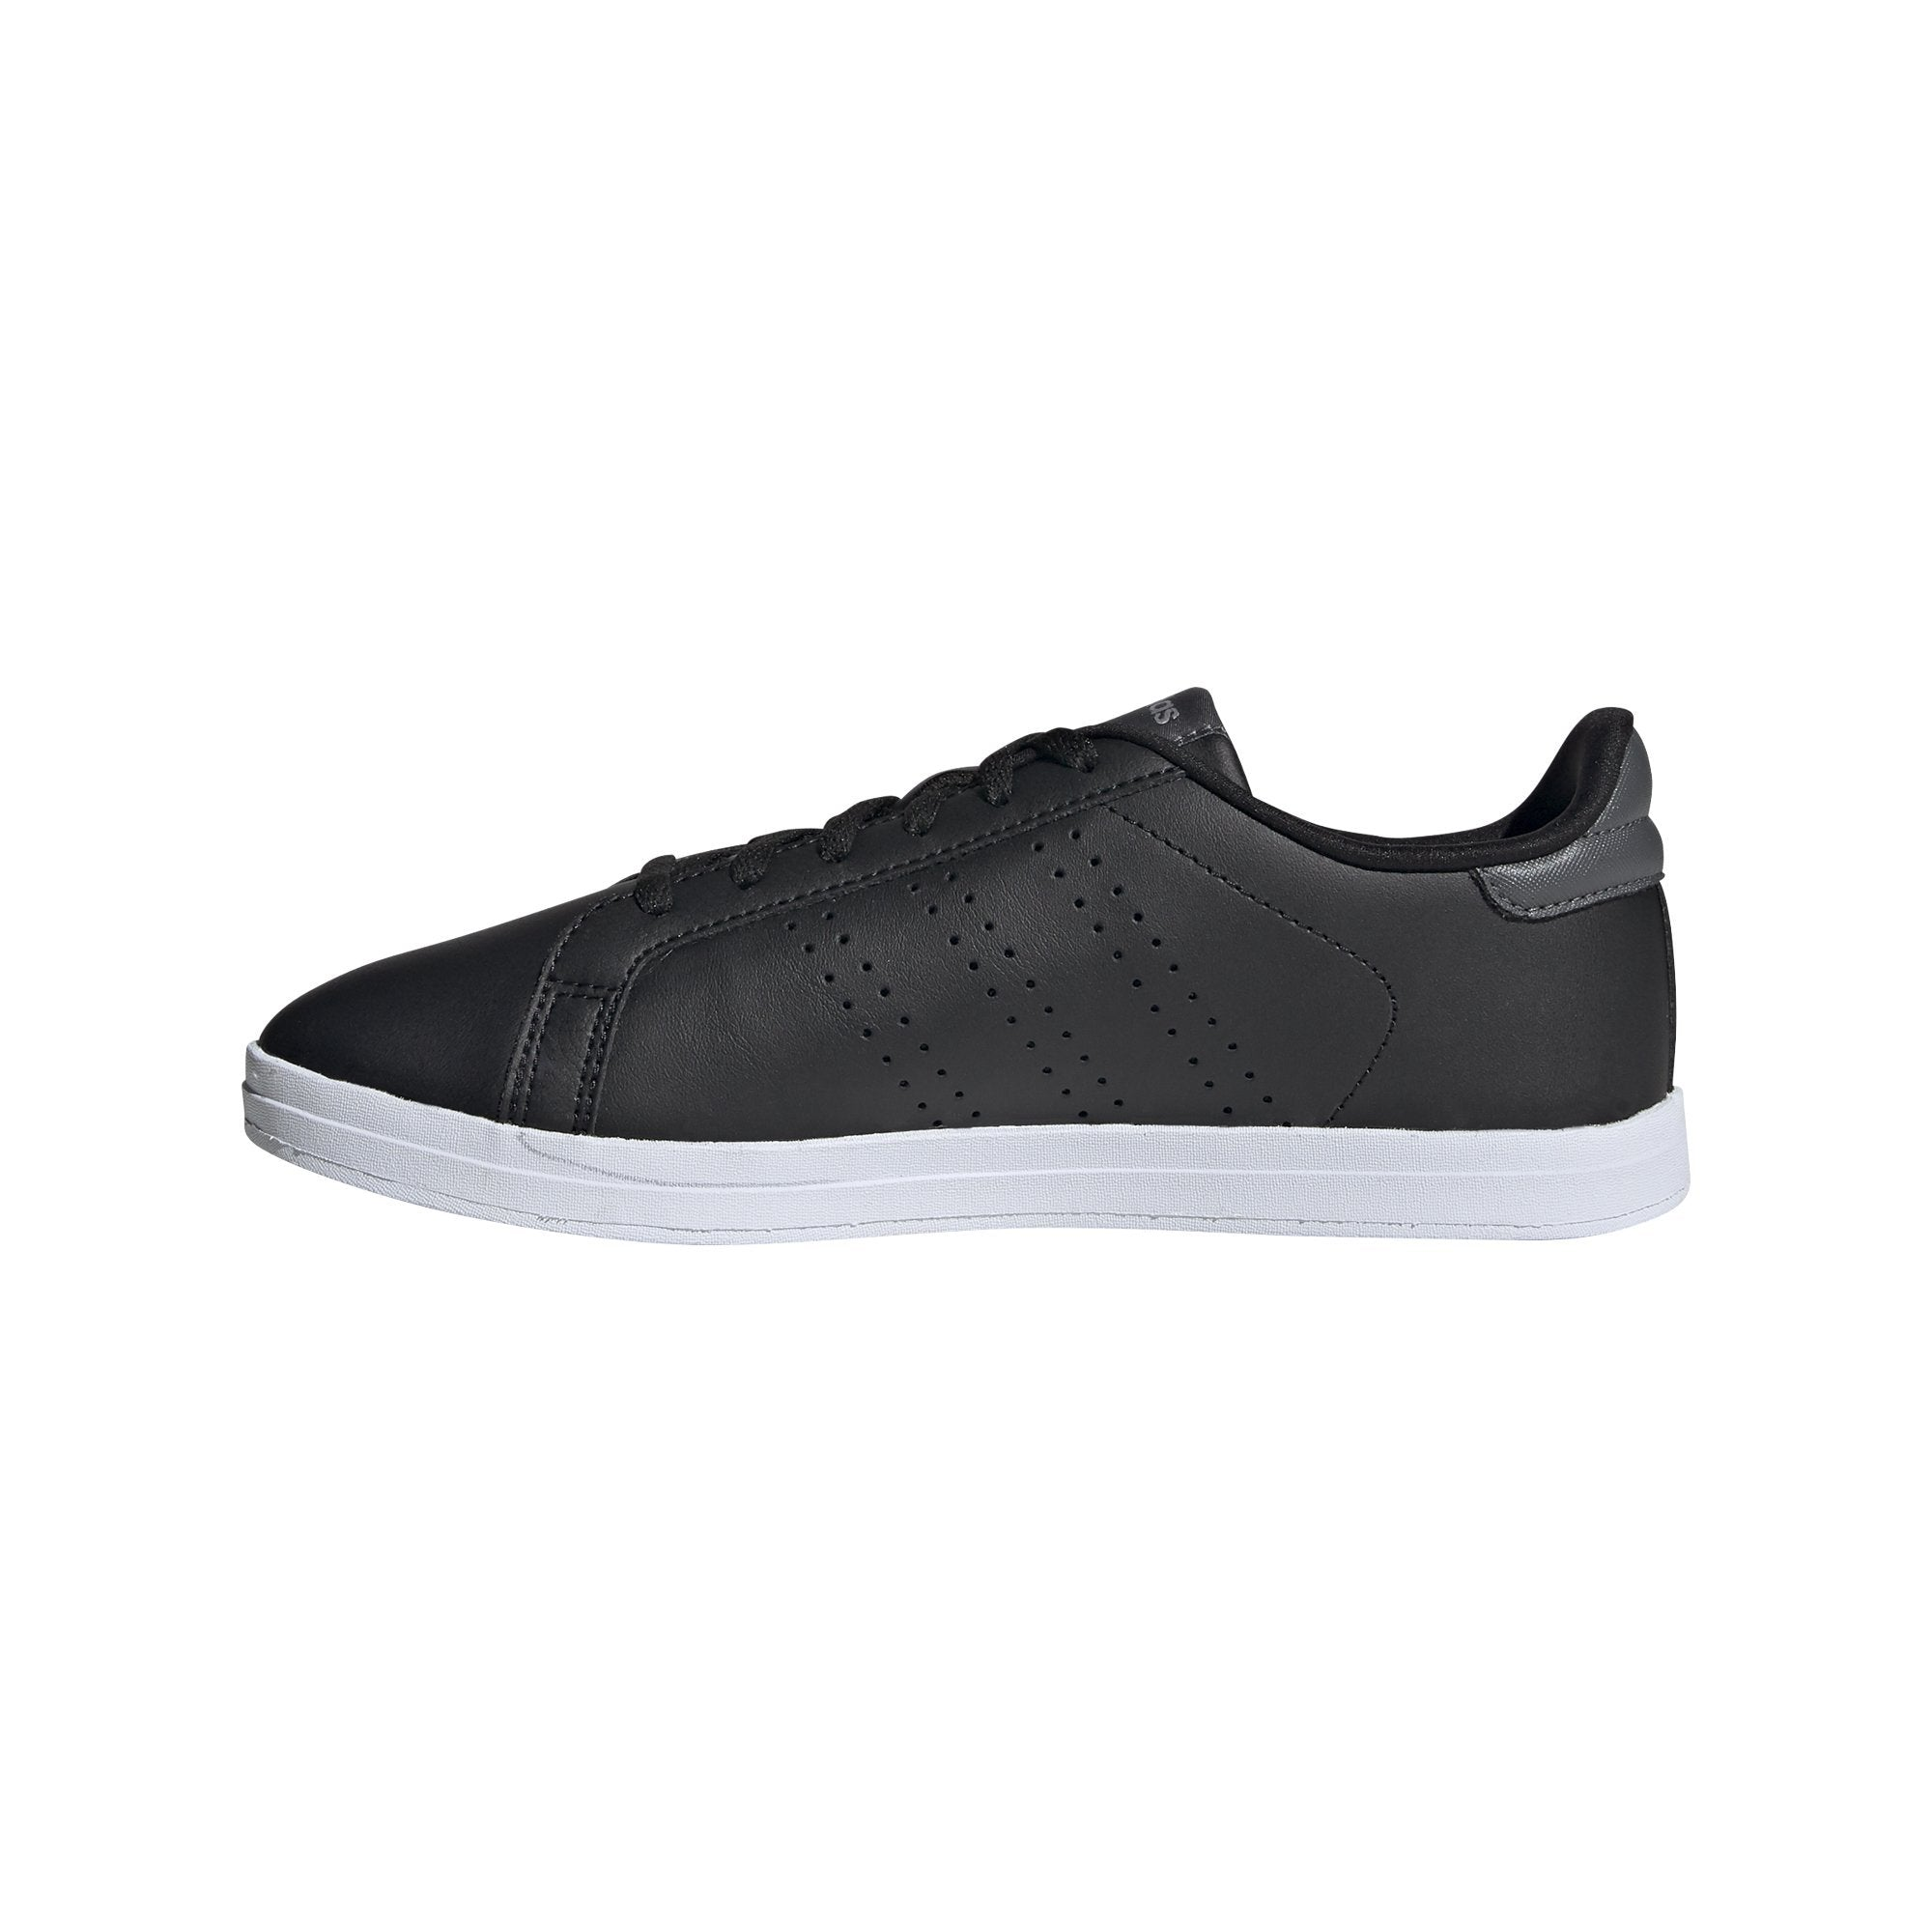 Adidas Womens Courtpoint CL X Shoes - Core Black/Core Black/Grey Six SP-Footwear-Womens Adidas